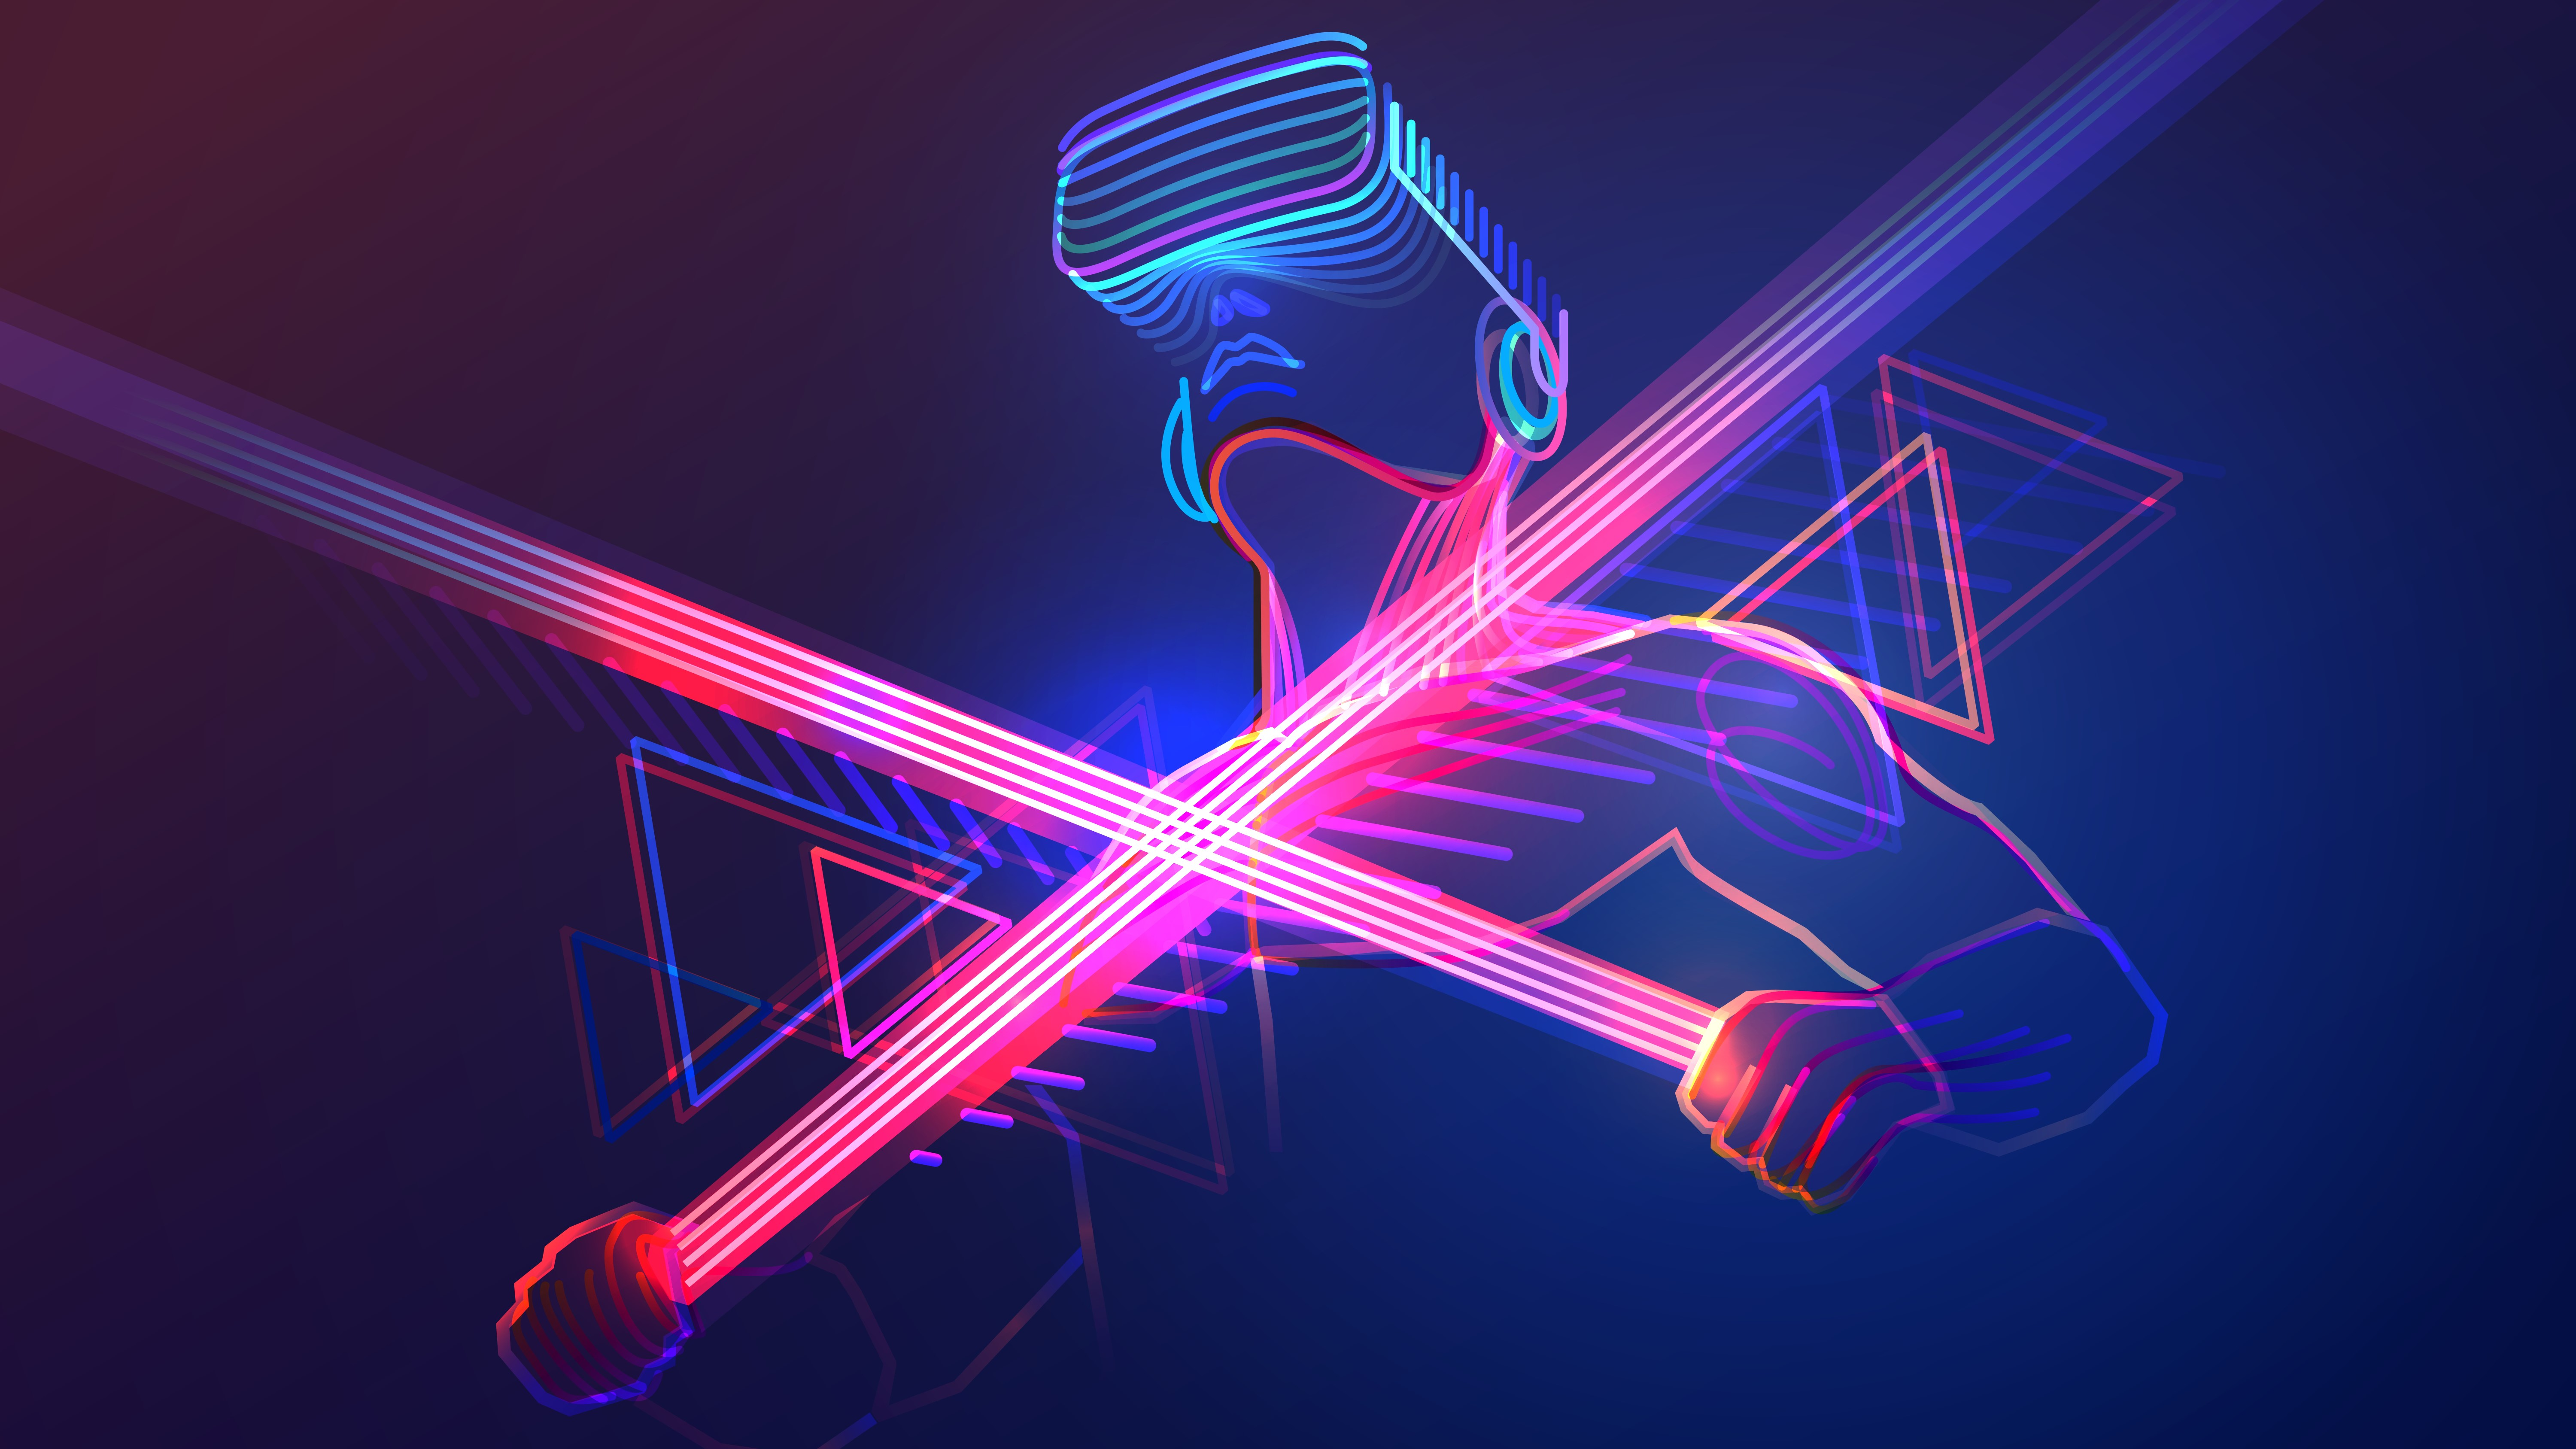 An image of a person in a VR headset holding light swords